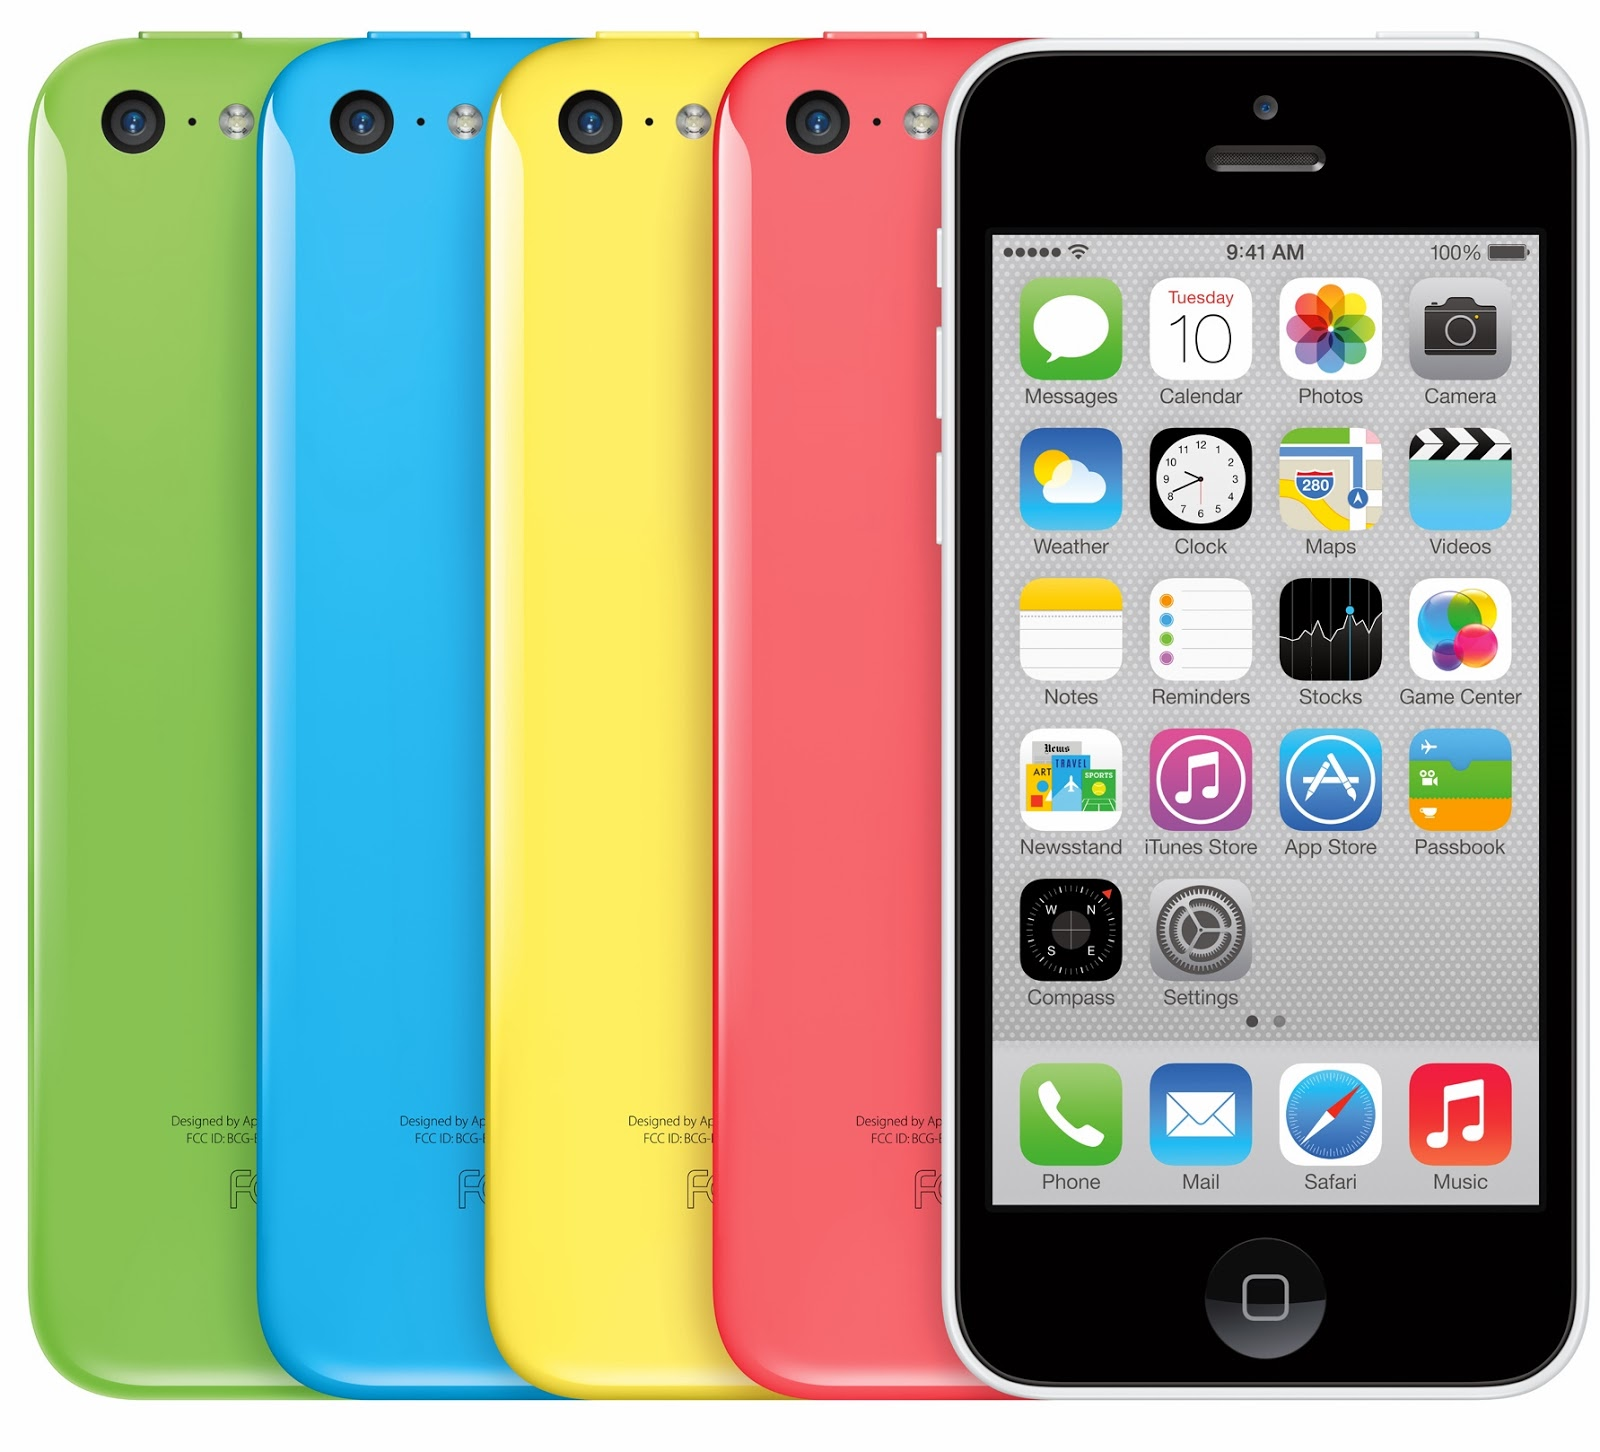 Globe Telecom iPhone 5c iPhone 5s plan